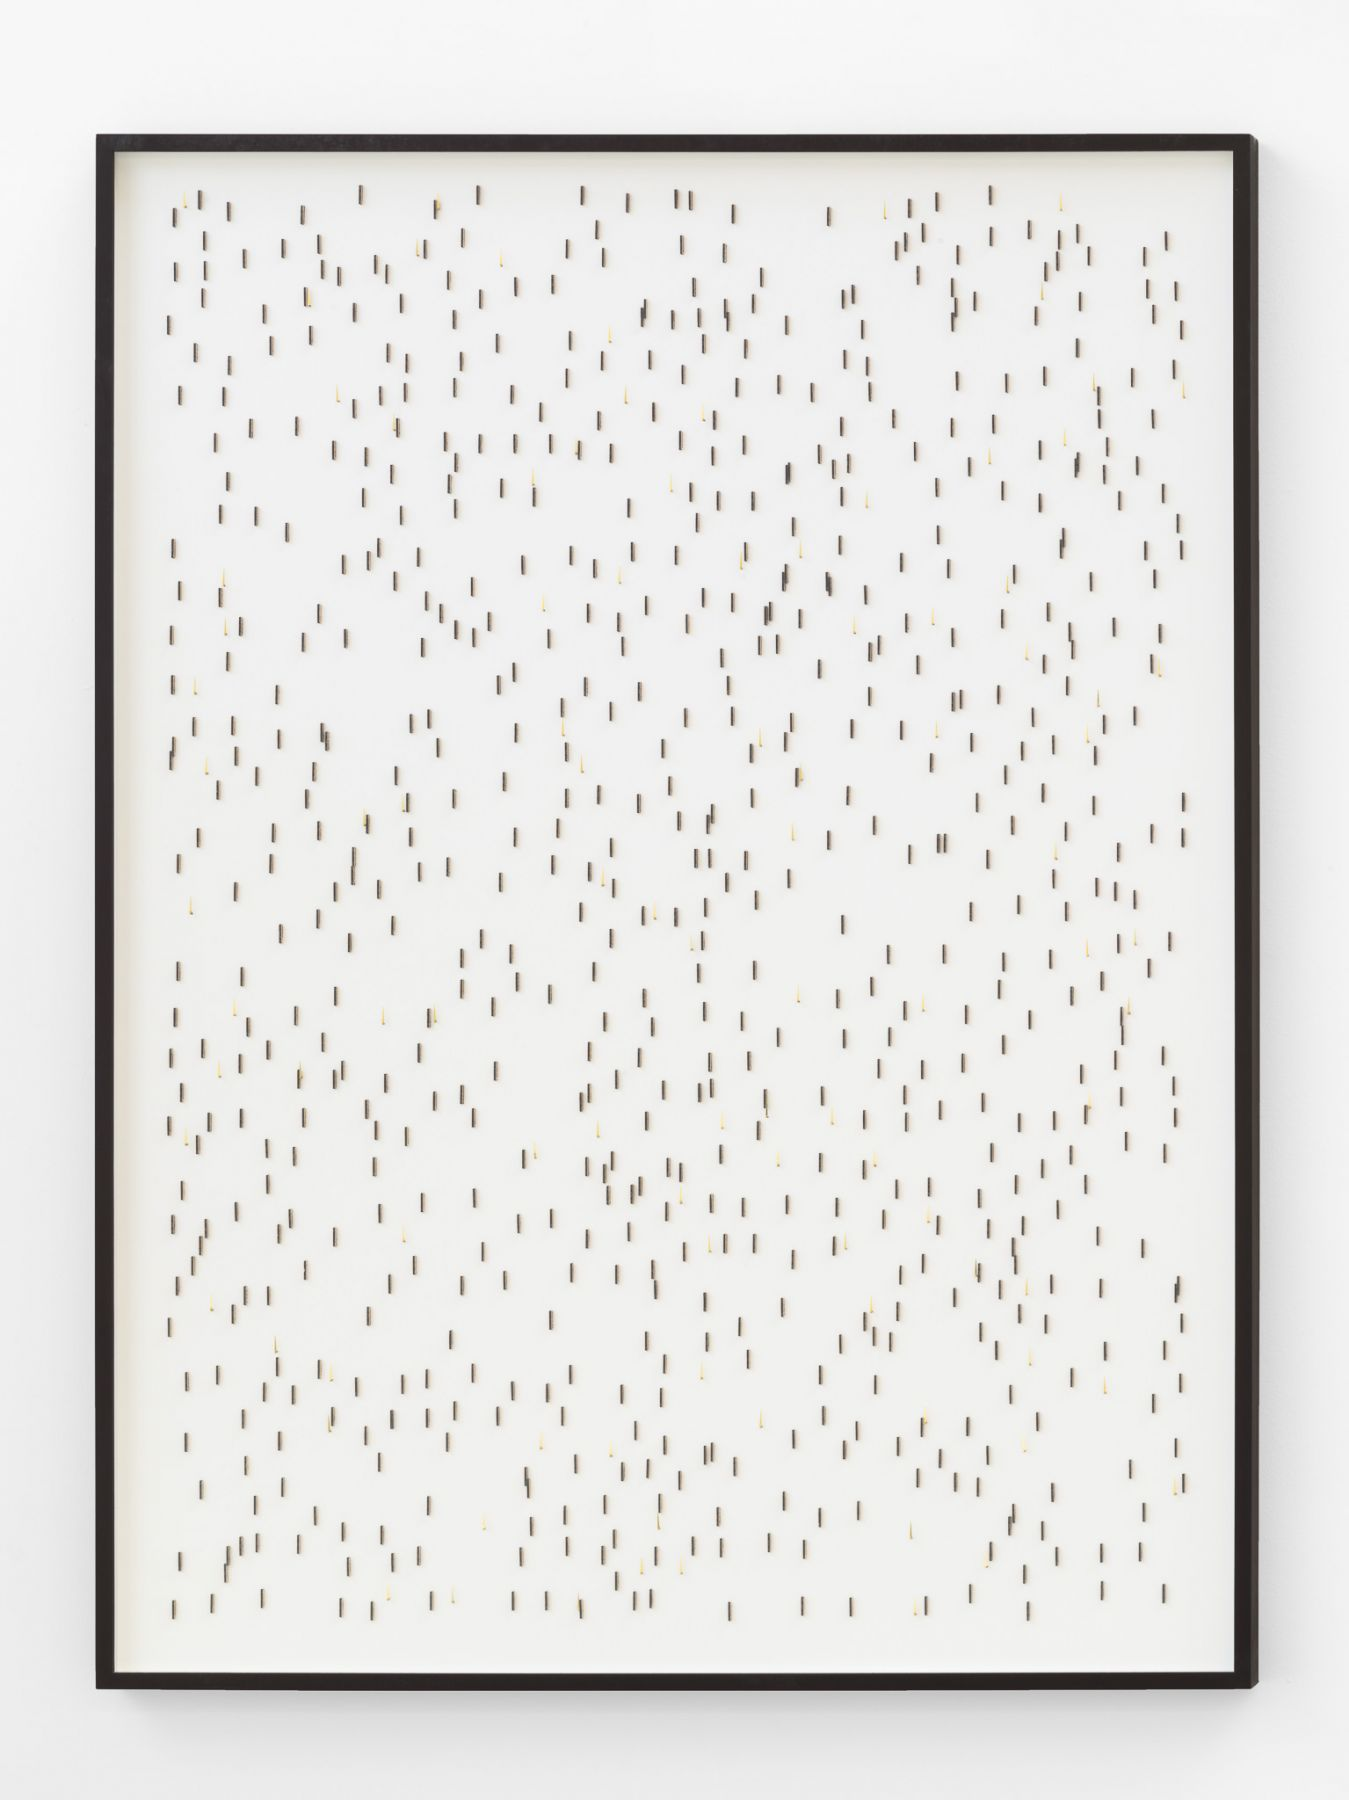 Alicja Kwade, Rain (1 minute 40 seconds/ 70 cm), 2019